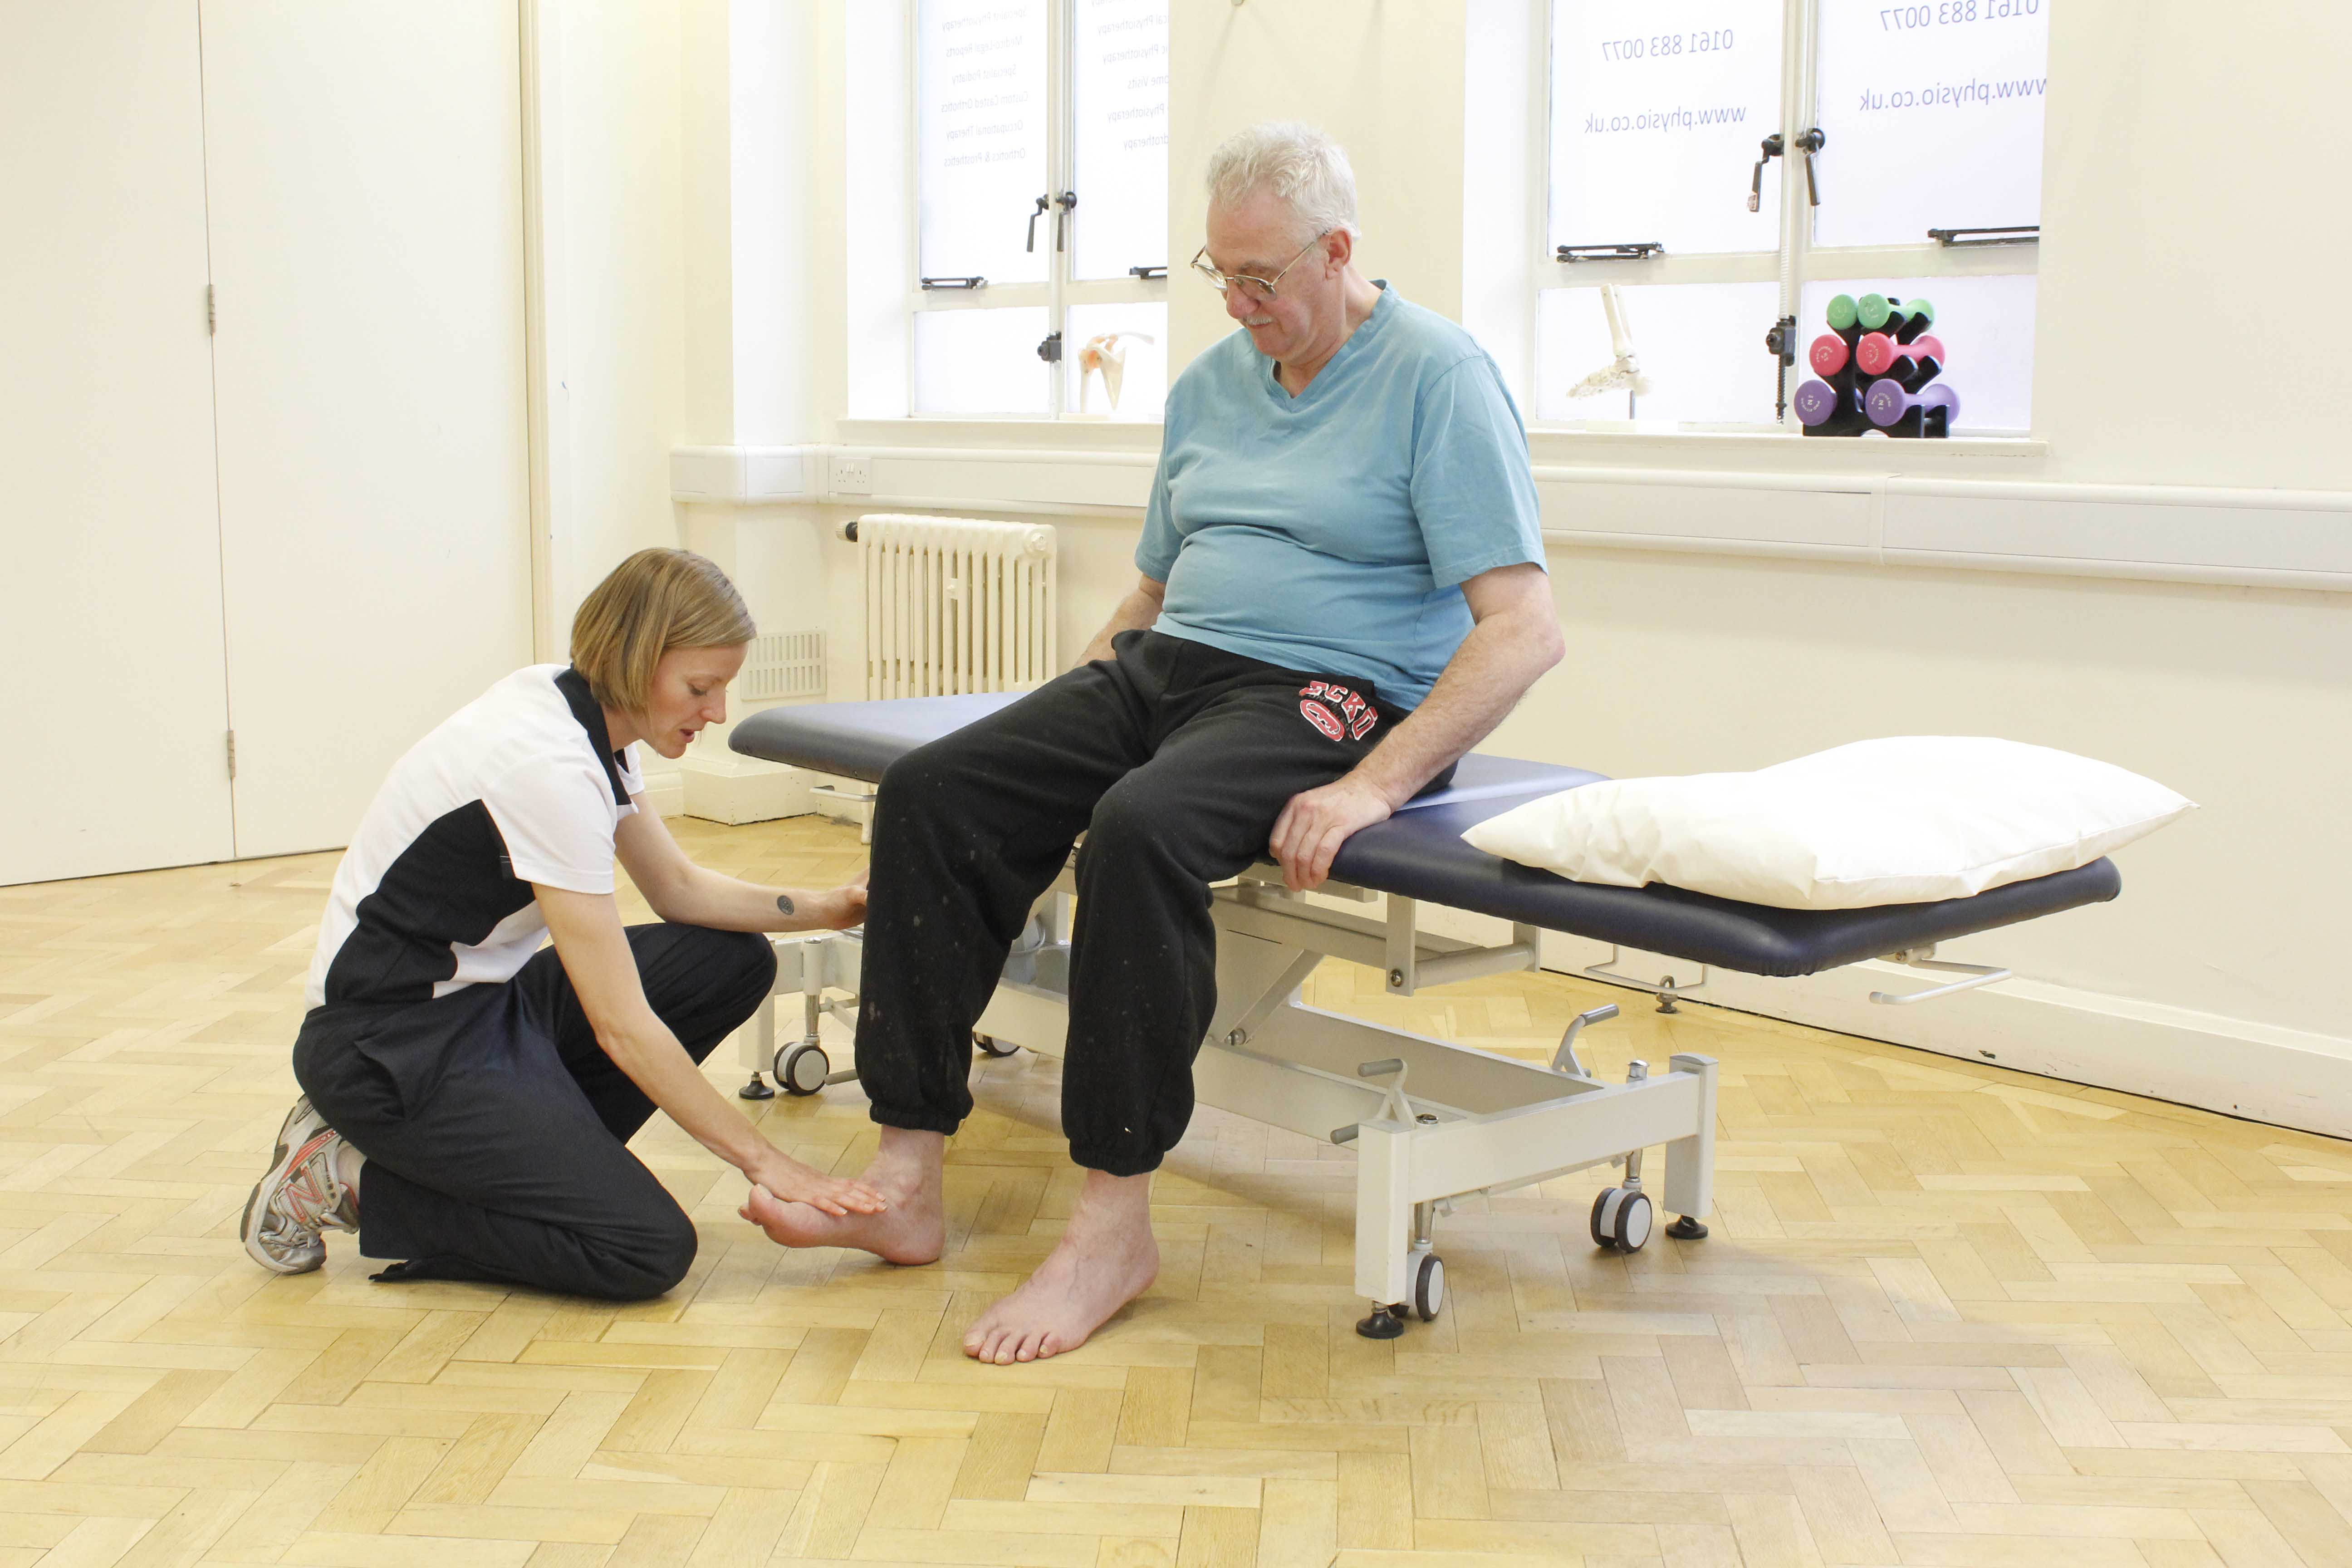 Experienced Physiotherapist assessing ankle mobility and stability